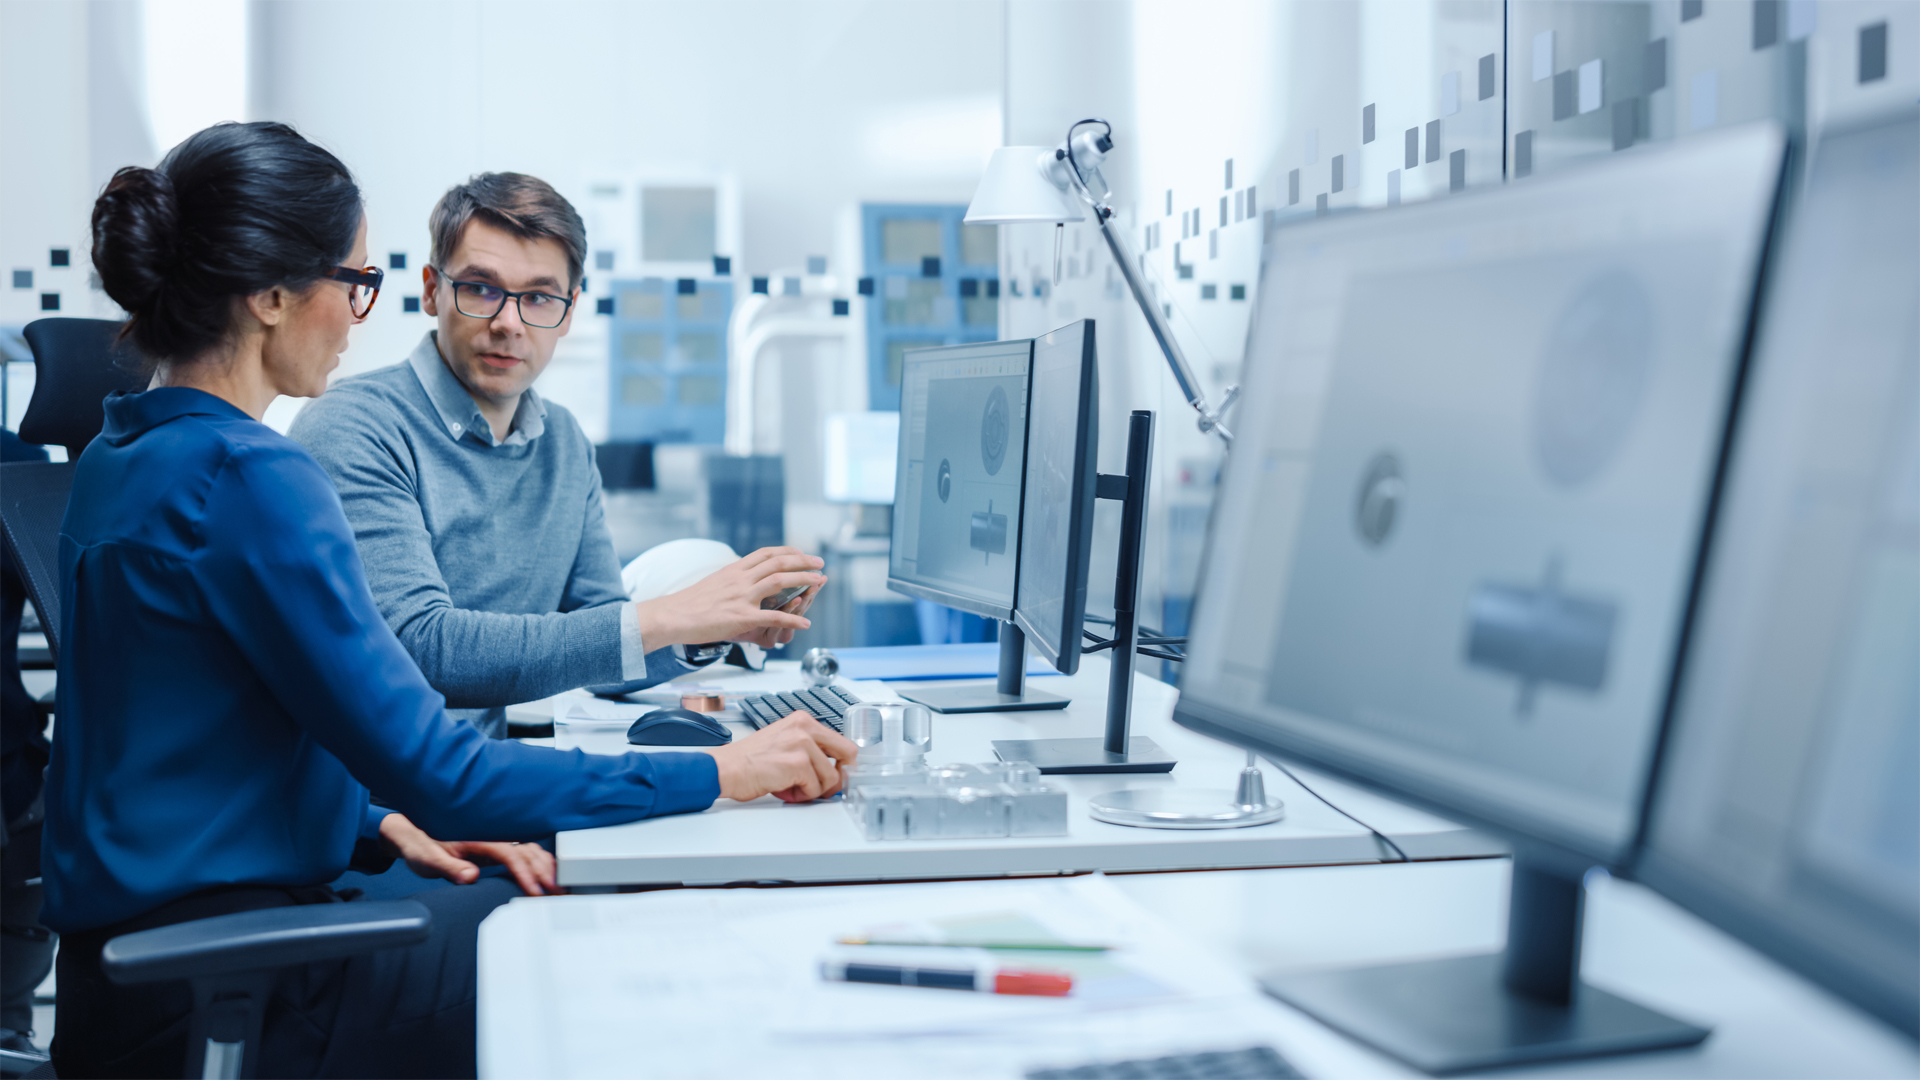 5 Emerging Technologies for Manufacturing